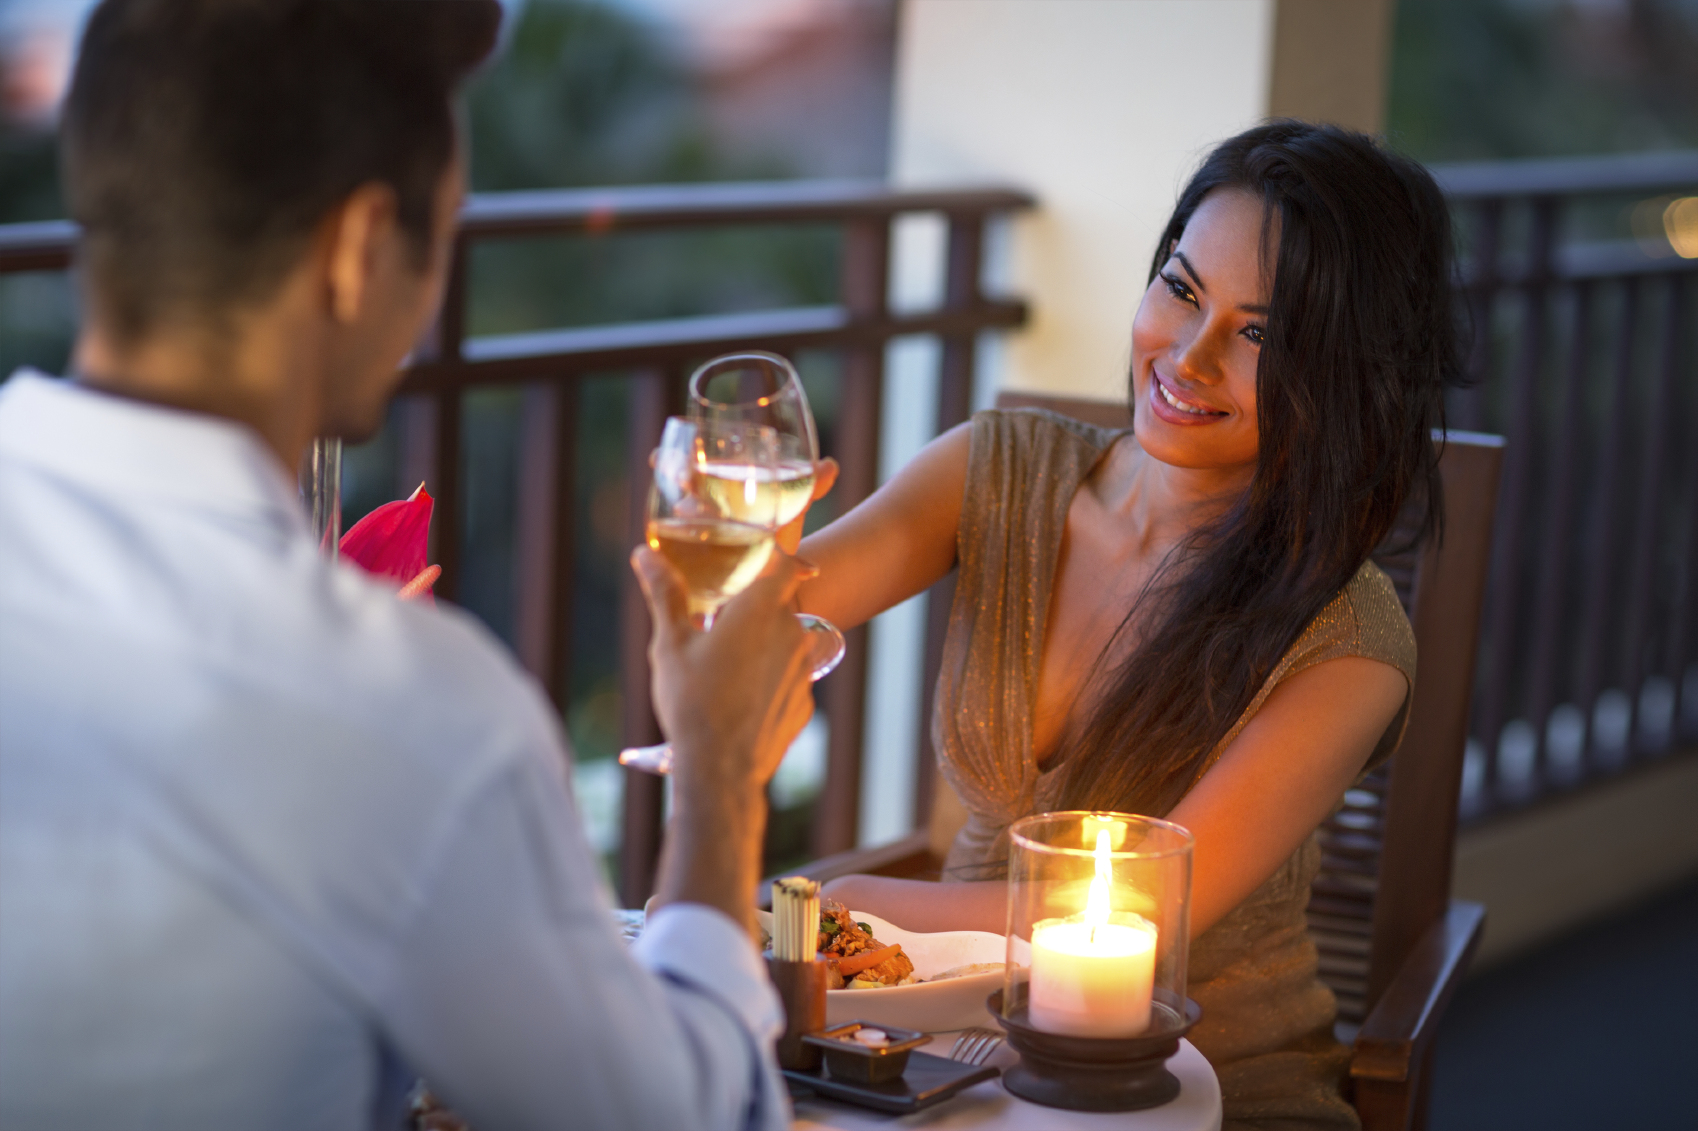 How to know if he wants a second date